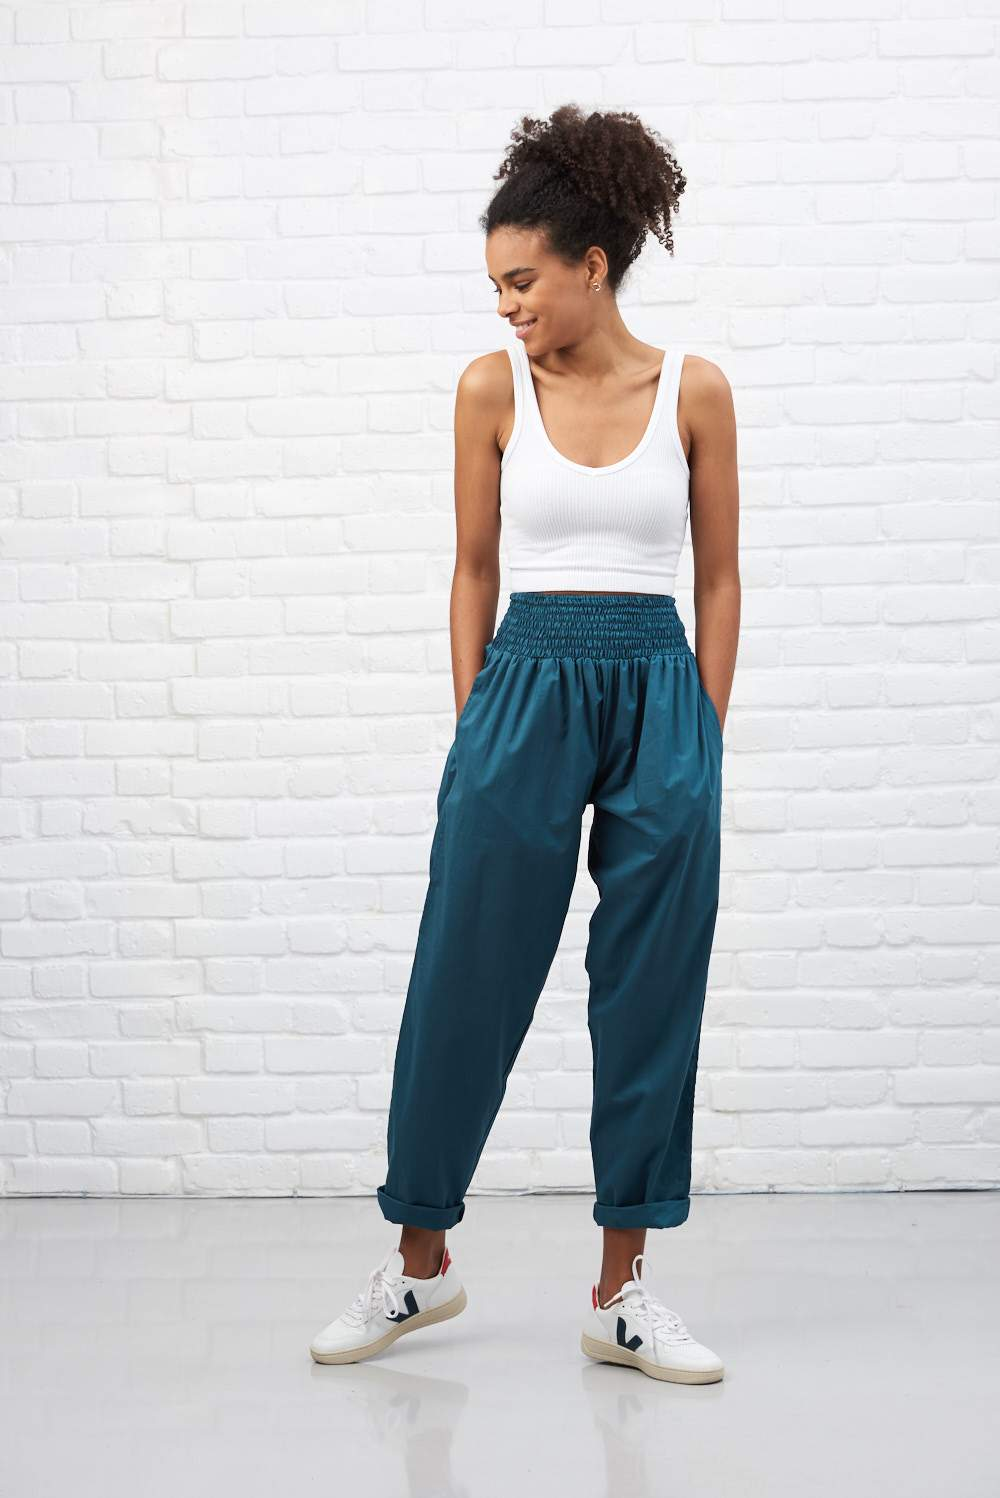 Lucy & Yak cotton trousers 'Organic Taupo' High Waist Cotton Trousers in Petrol Blue